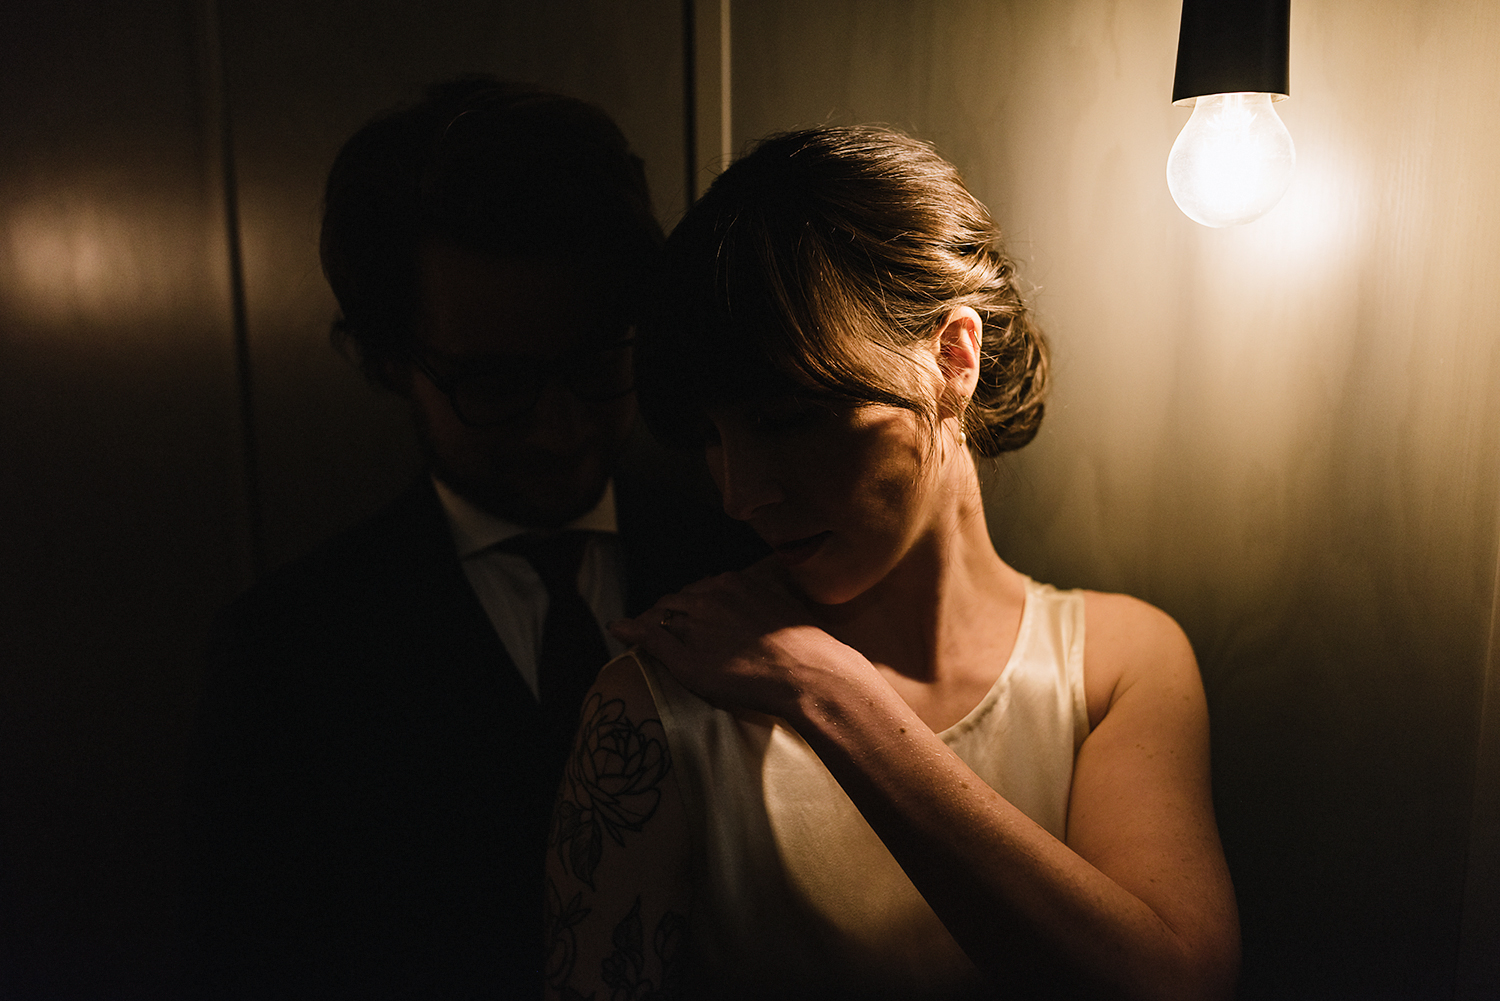 portraits-of-groom-and-bride-by-light-moody-editorial-Toronto-Elopement-at-the-Drake-Hotel-pop-up-Torontos-Best-wedding-photographers-candid-documentary-photojournalistic.jpg